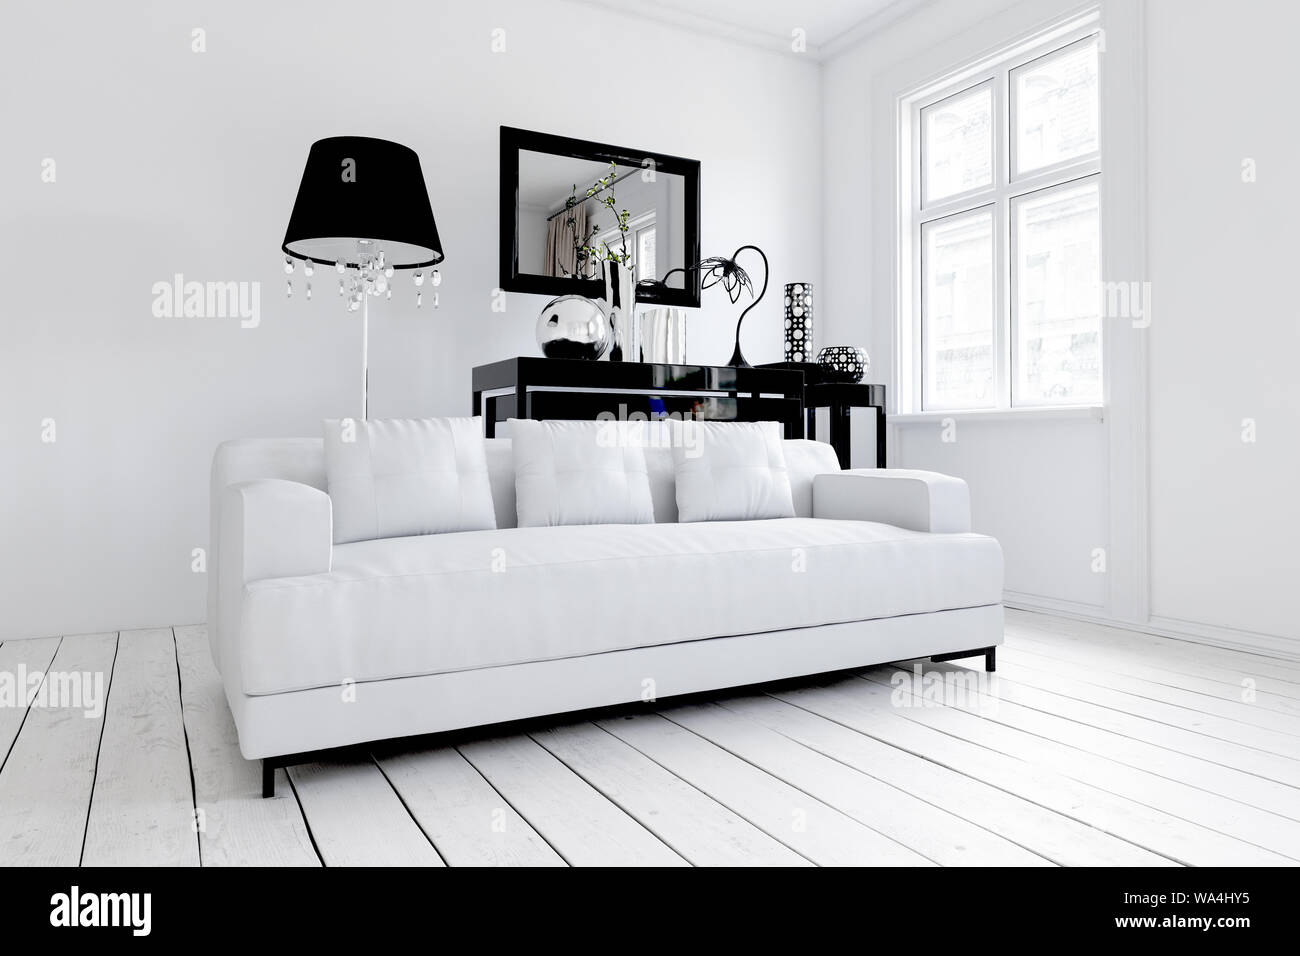 White Sofa In Stylish Modern Living Room With Wooden Floor And Mirror In Background 3d Rendering Stock Photo Alamy